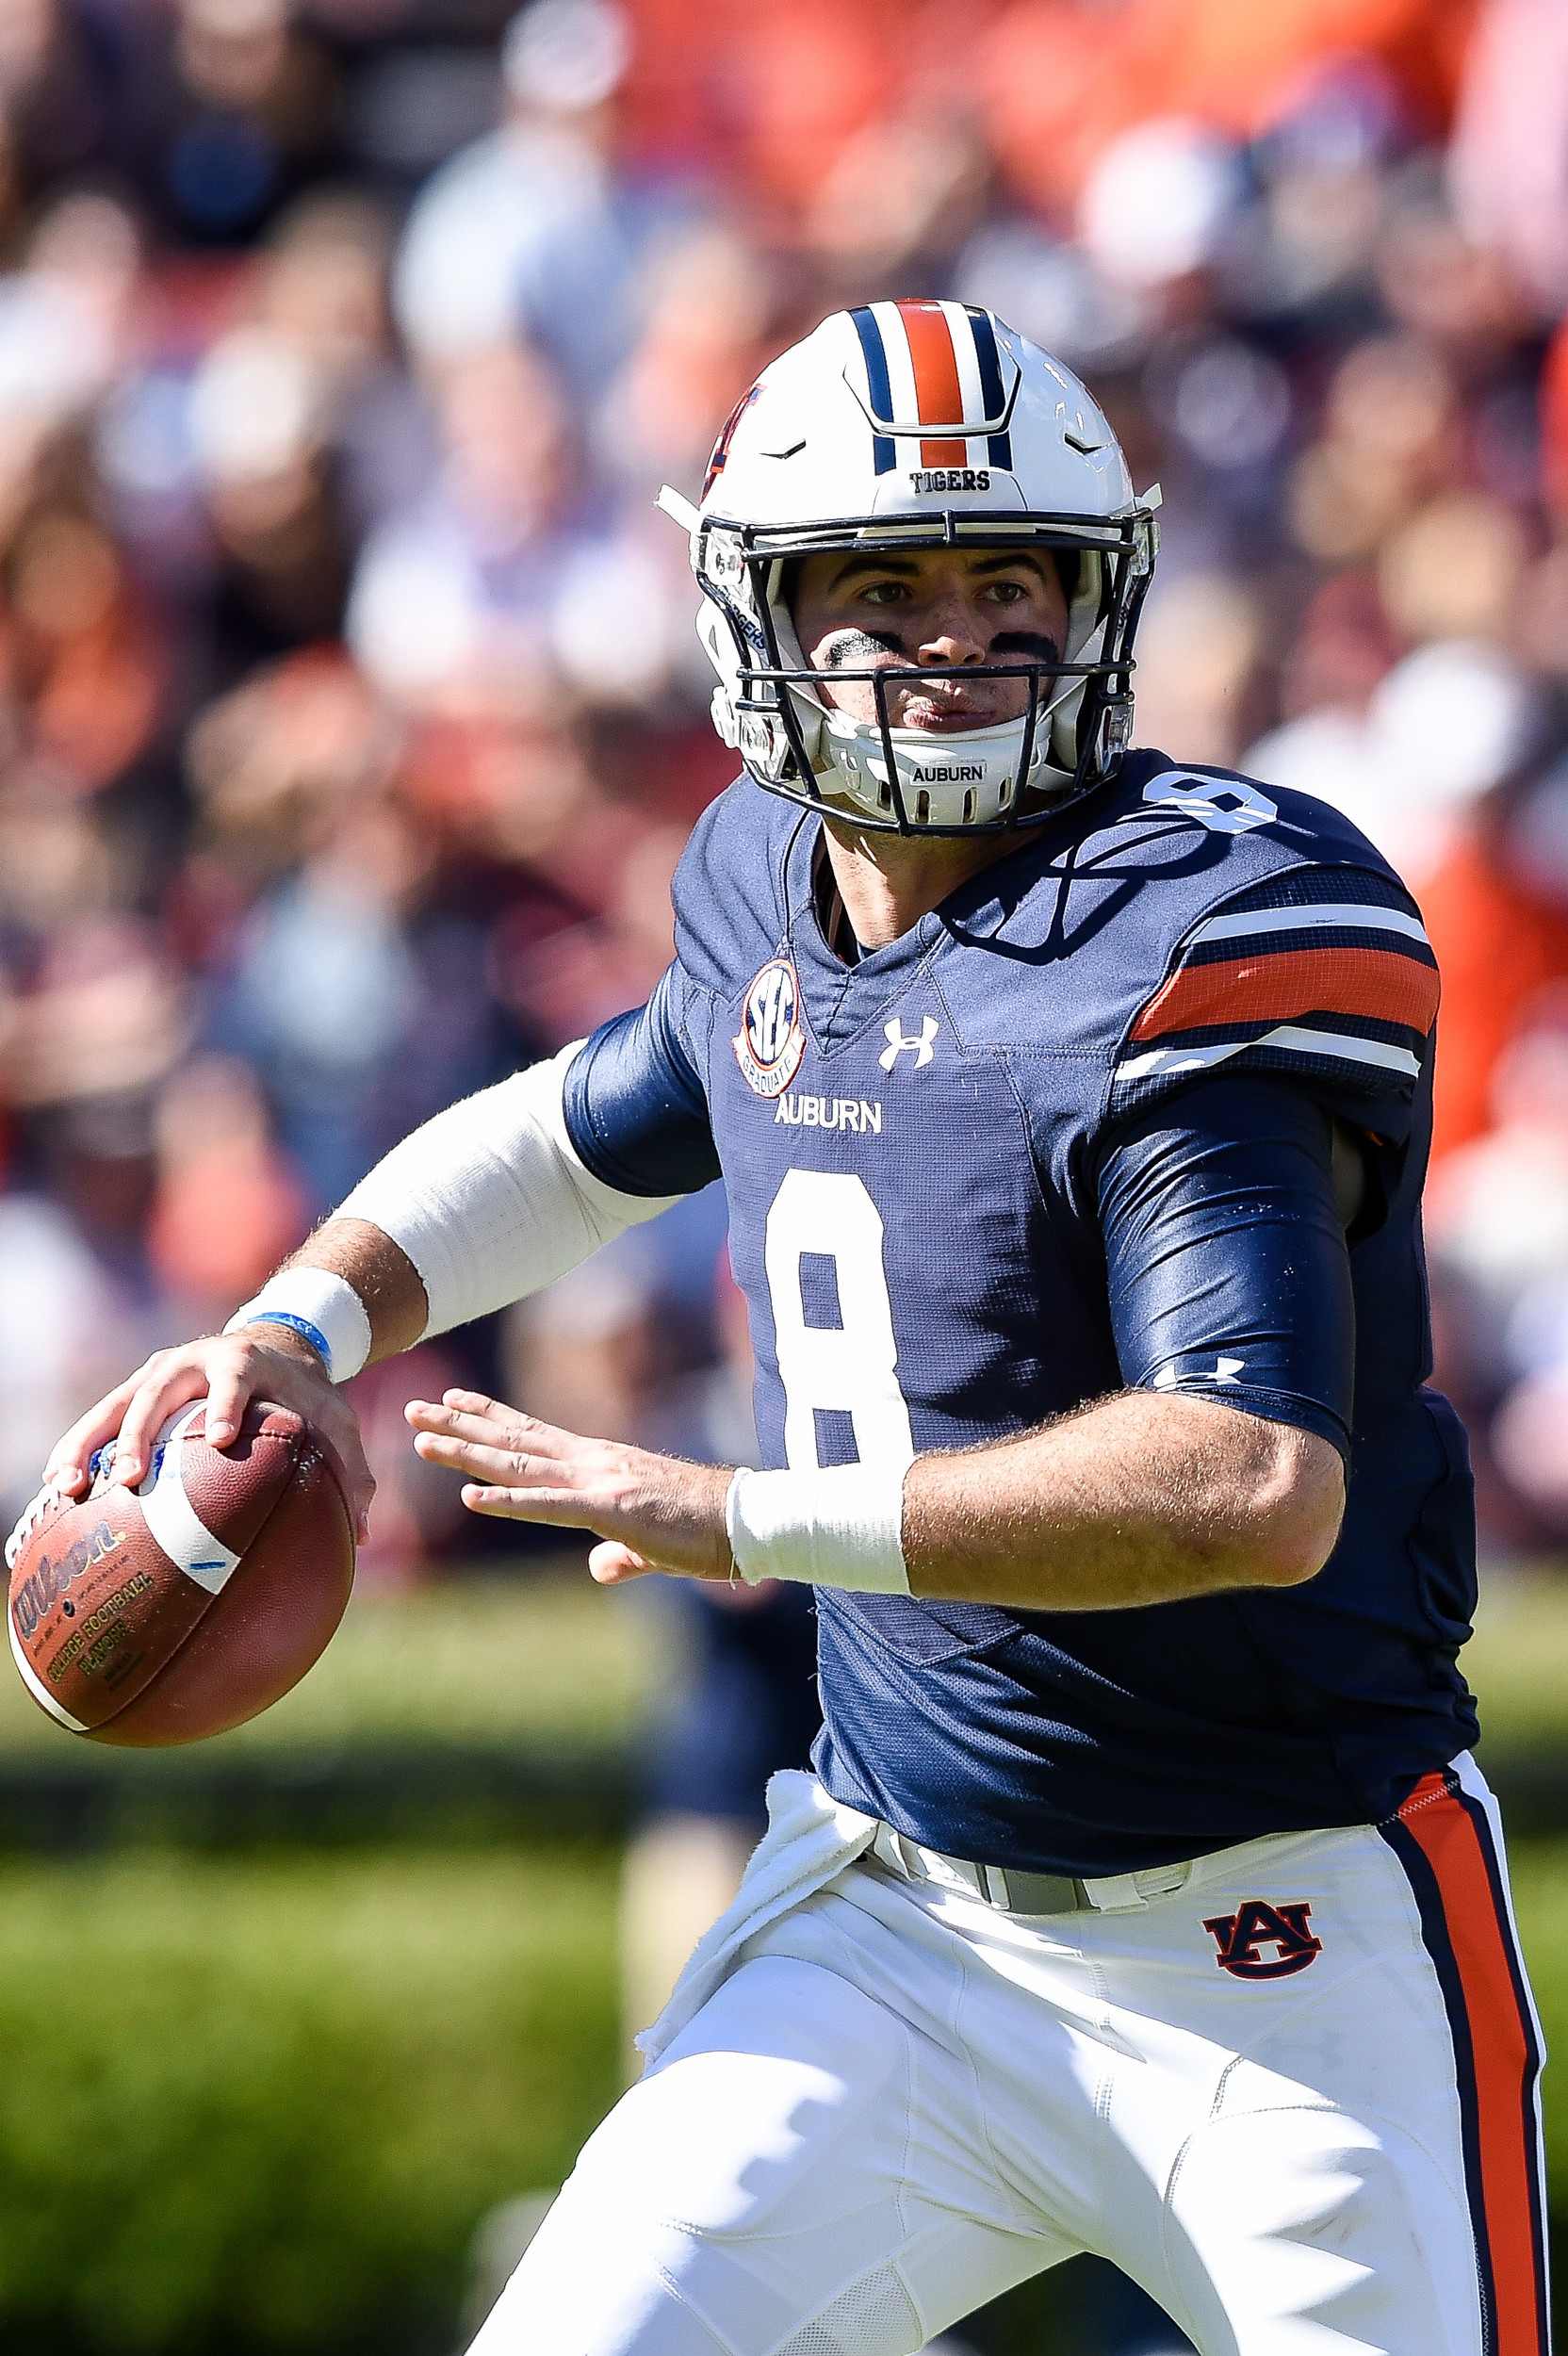 Auburn Tigers quarterback Jarrett Stidham (8) looks to throw downfield during the second half of an NCAA football game against the Texas A&M Aggies Saturday, November 3, 2018, at Jordan-Hare Stadium in Auburn, Ala. (Photo by Jeff Johnsey)